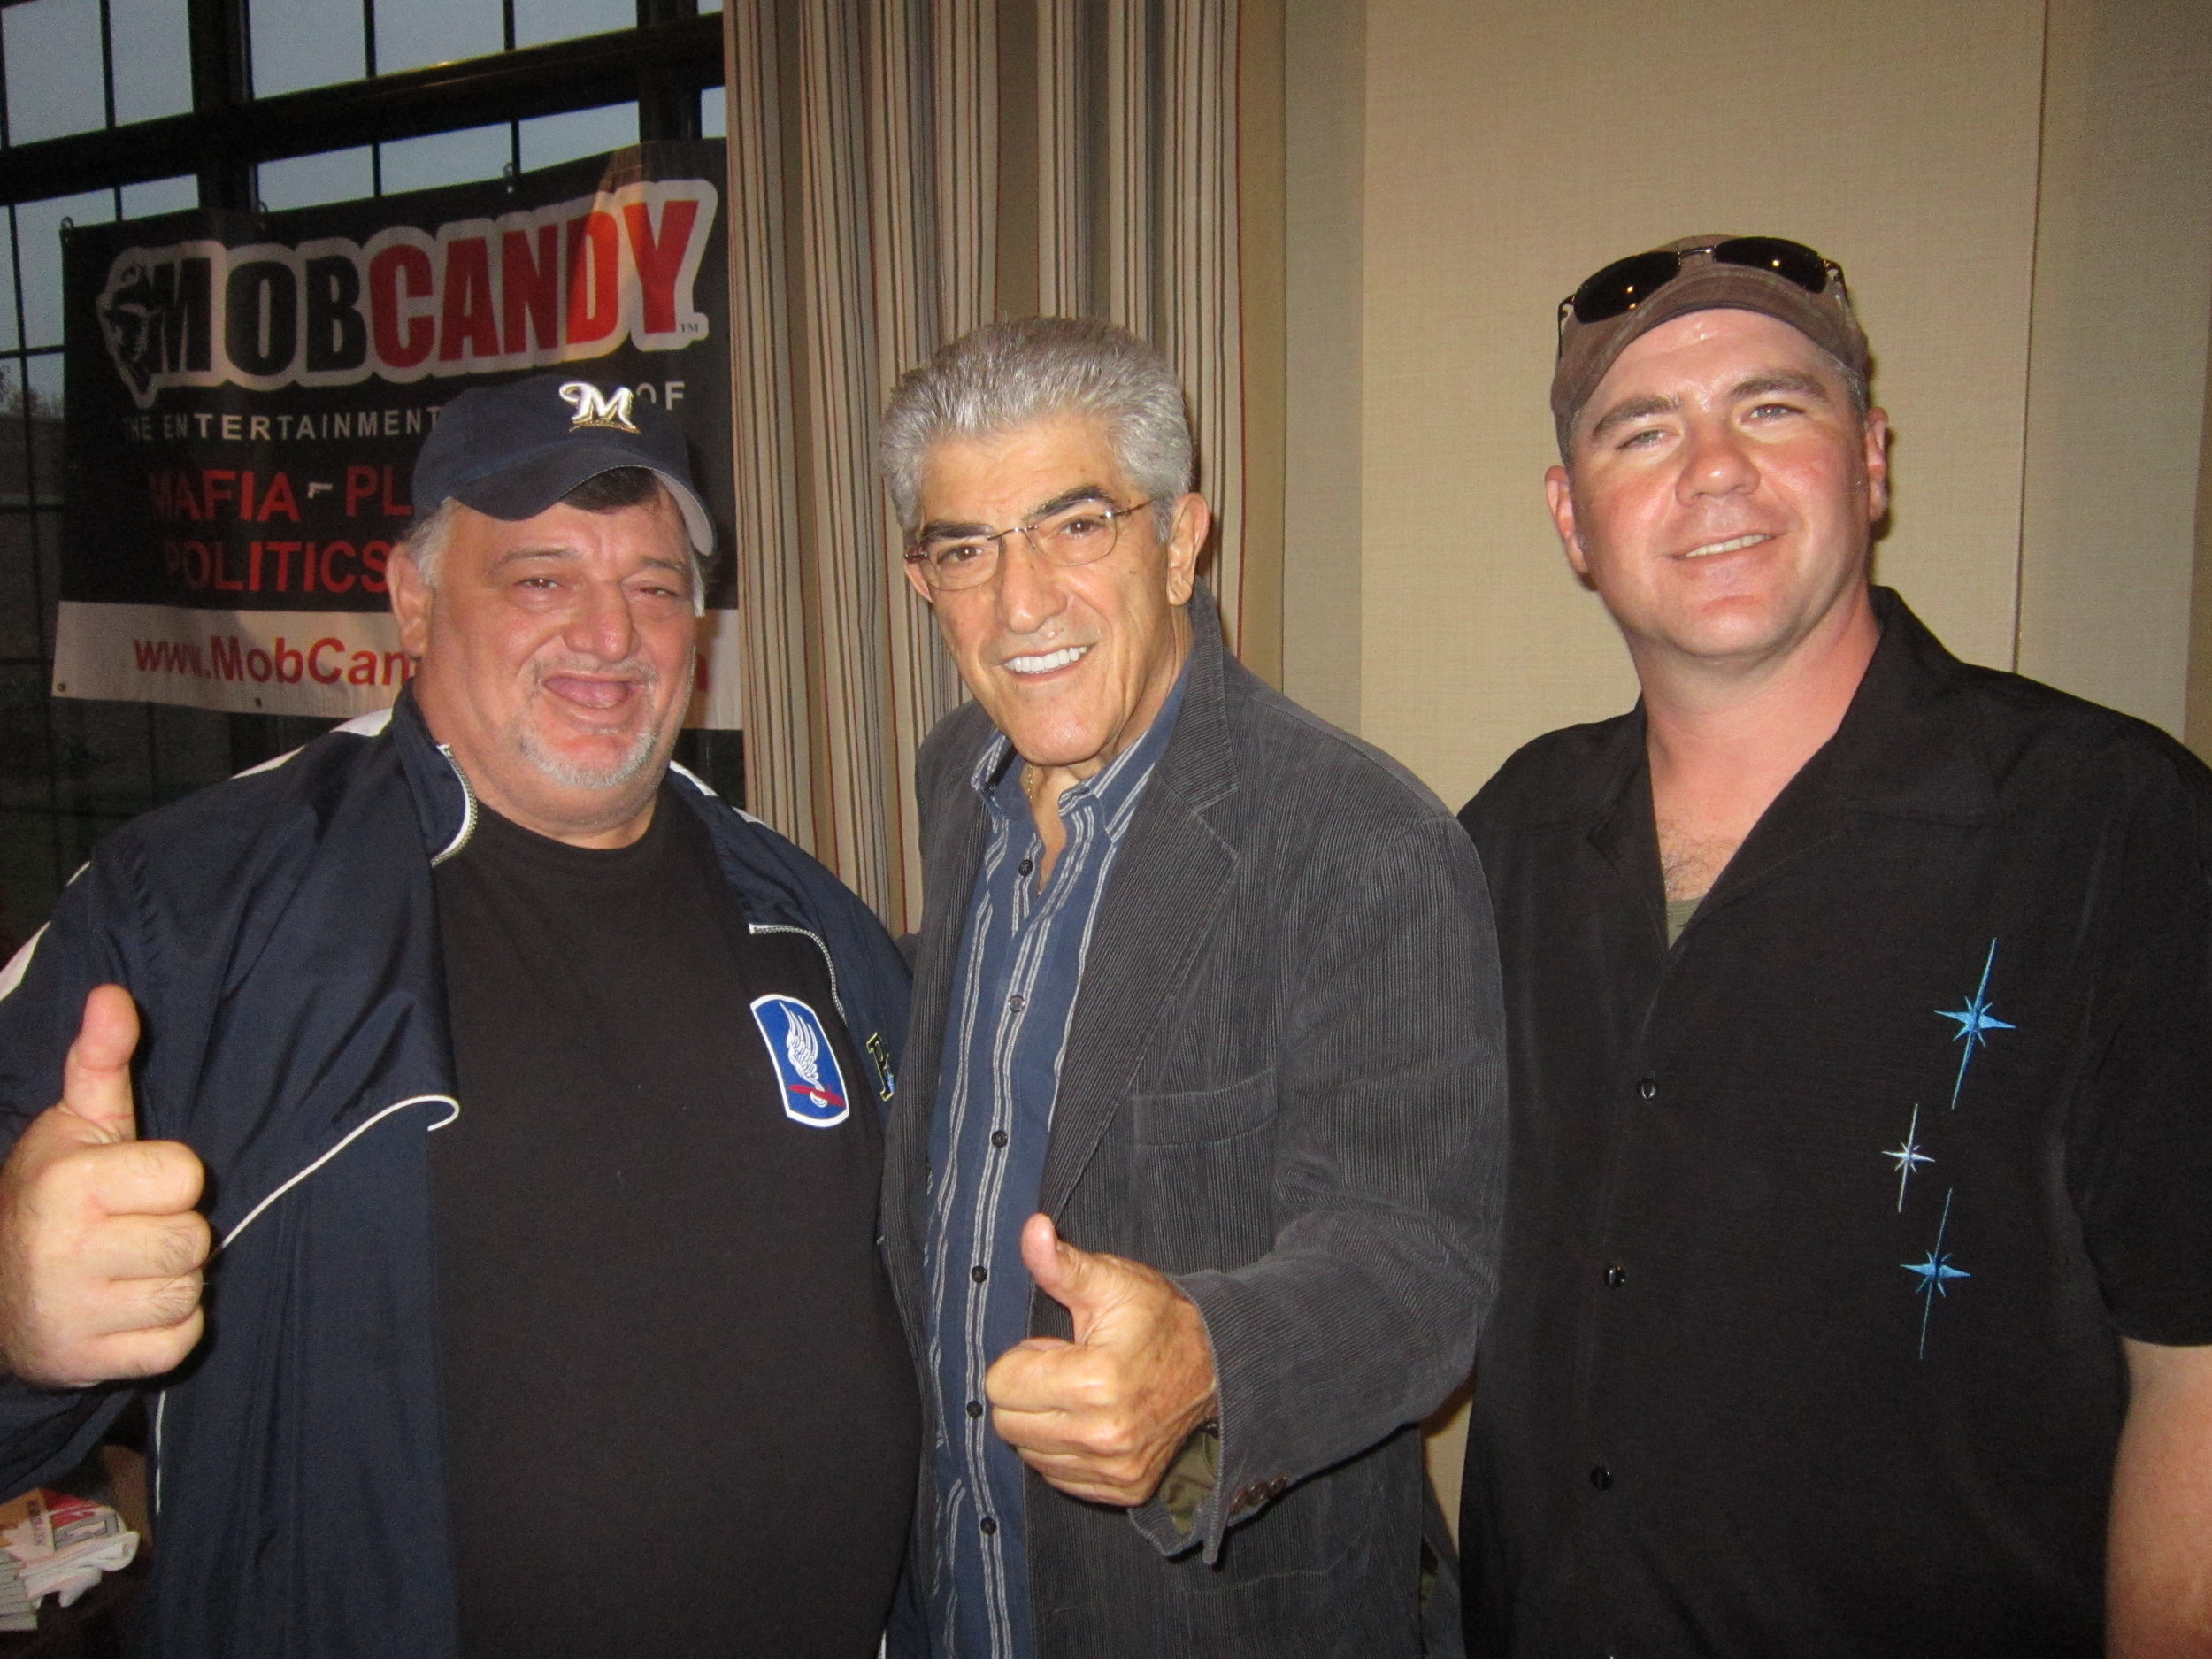 Bull and SBJ with Frank Vincent